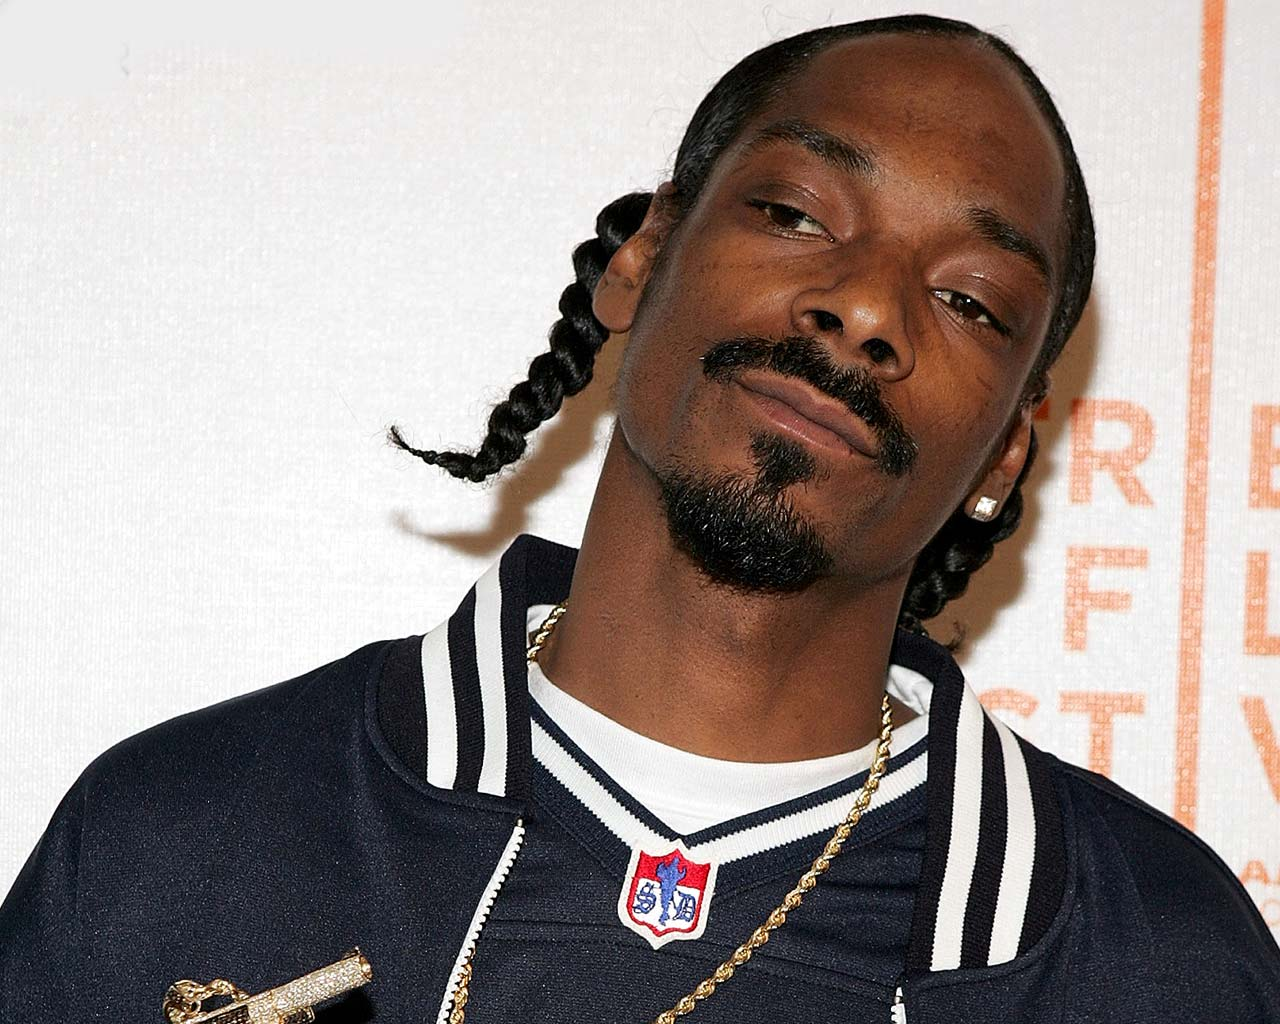 snoop dogg ceo twitter 600 02